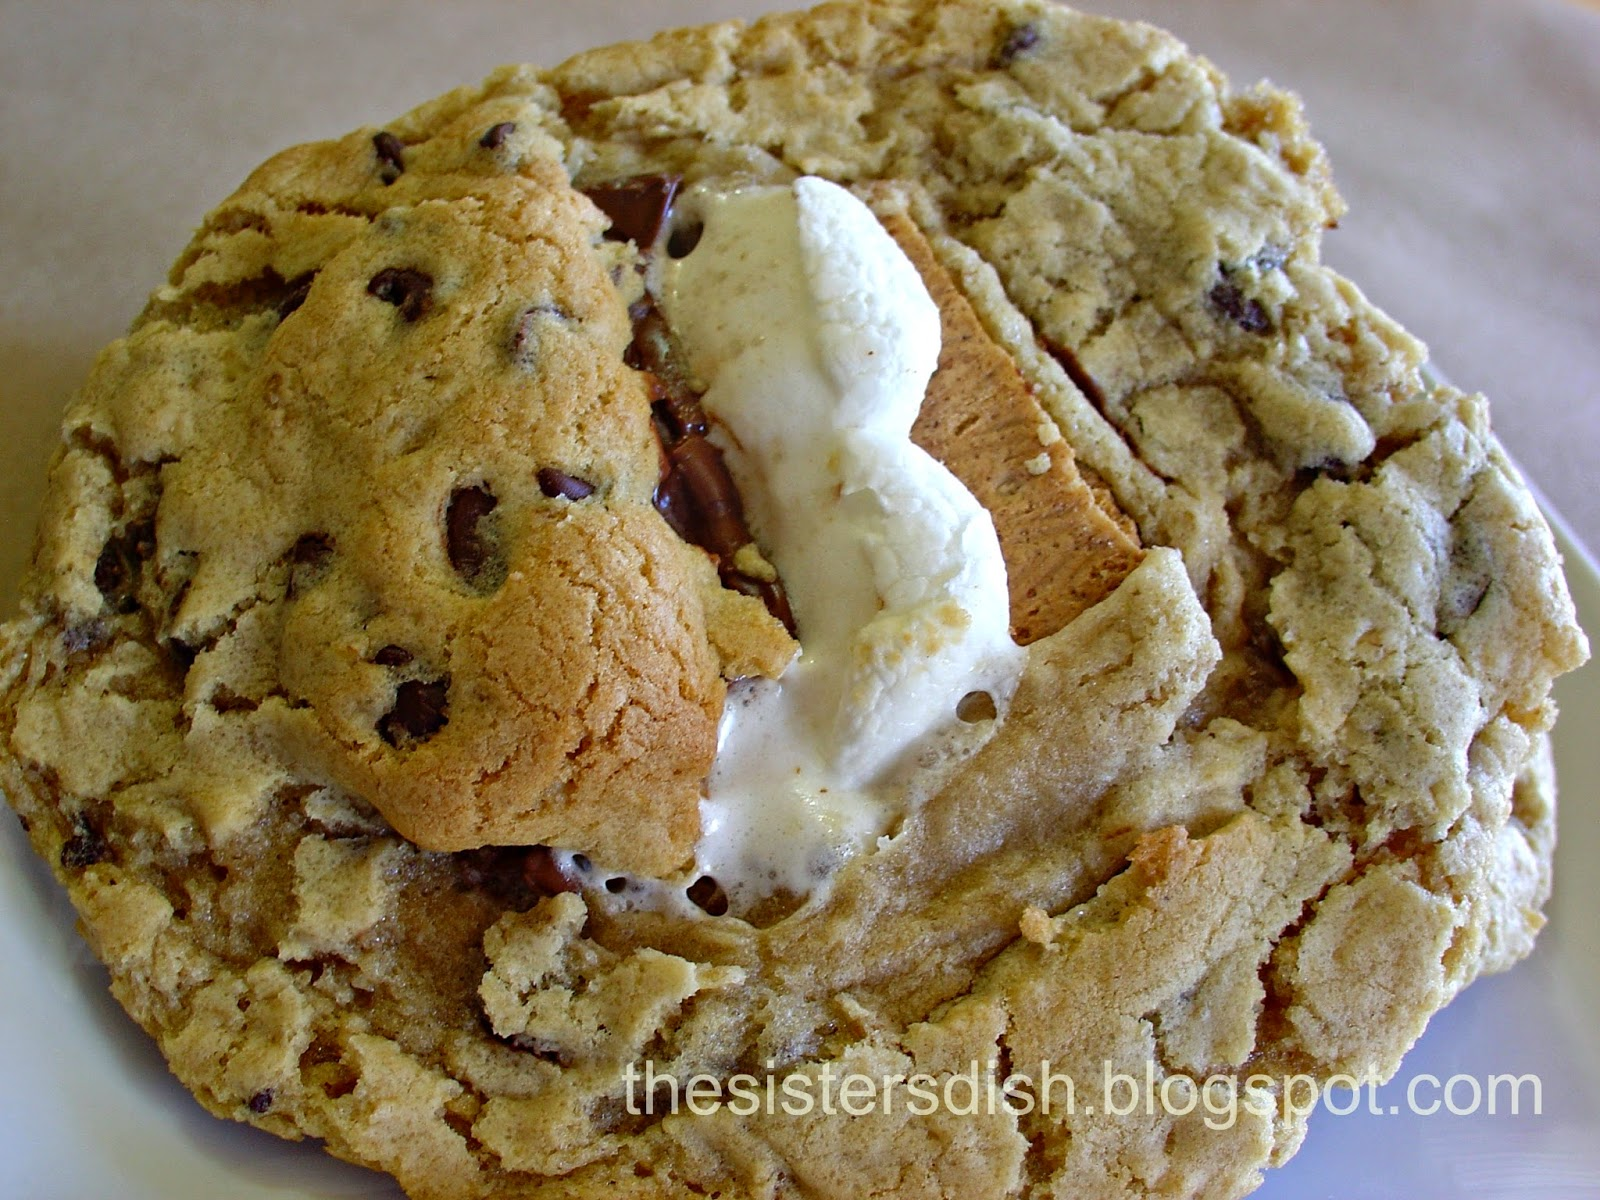 The Sisters Dish: S'mores Stuffed Chocolate Chip Cookies